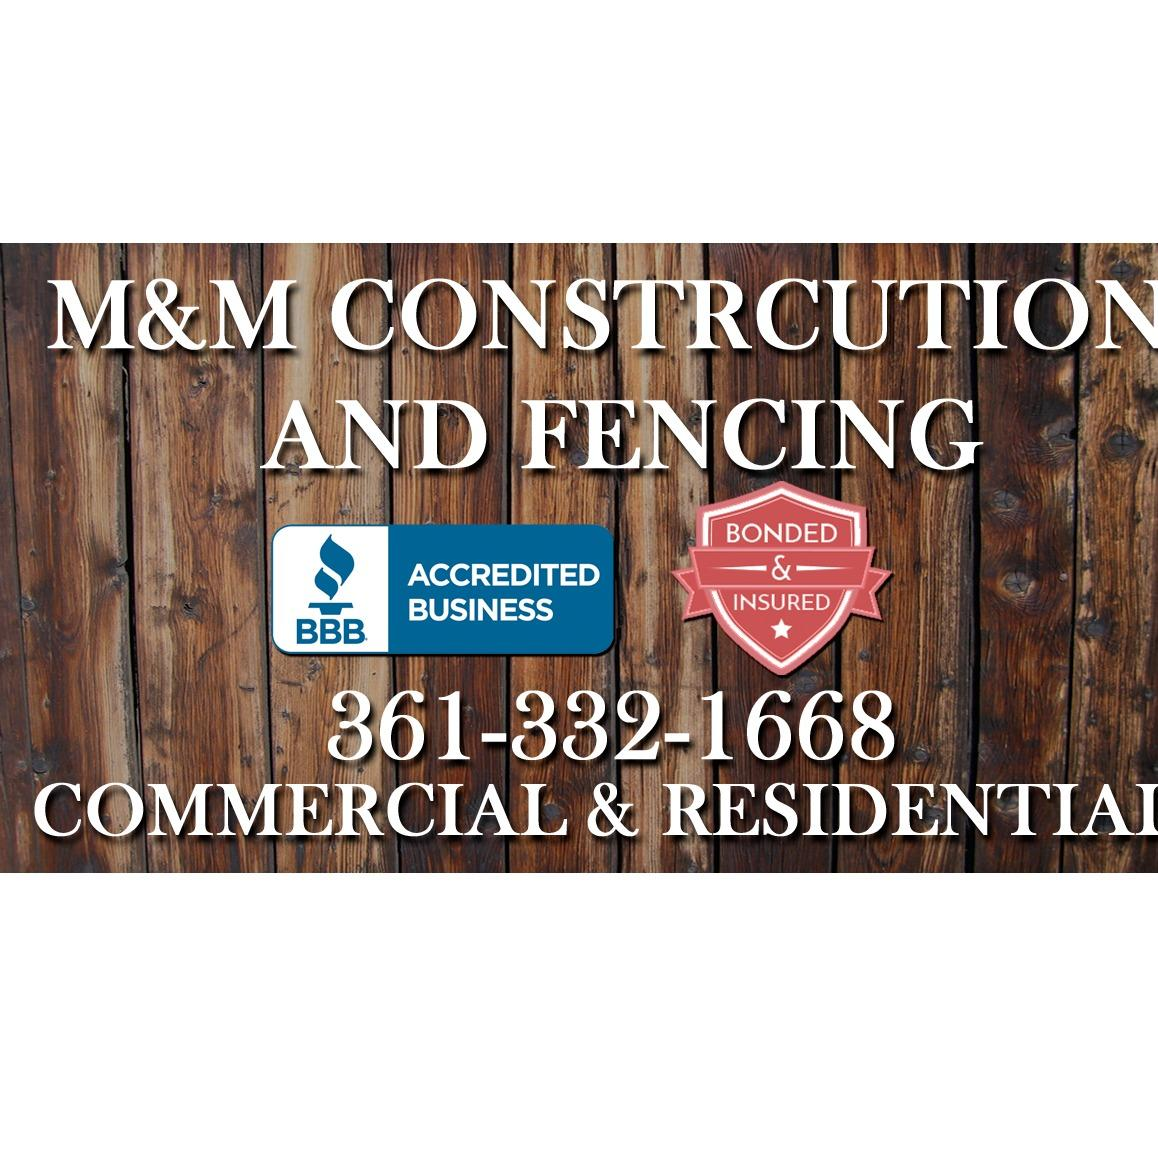 M&M Construction and Fencing